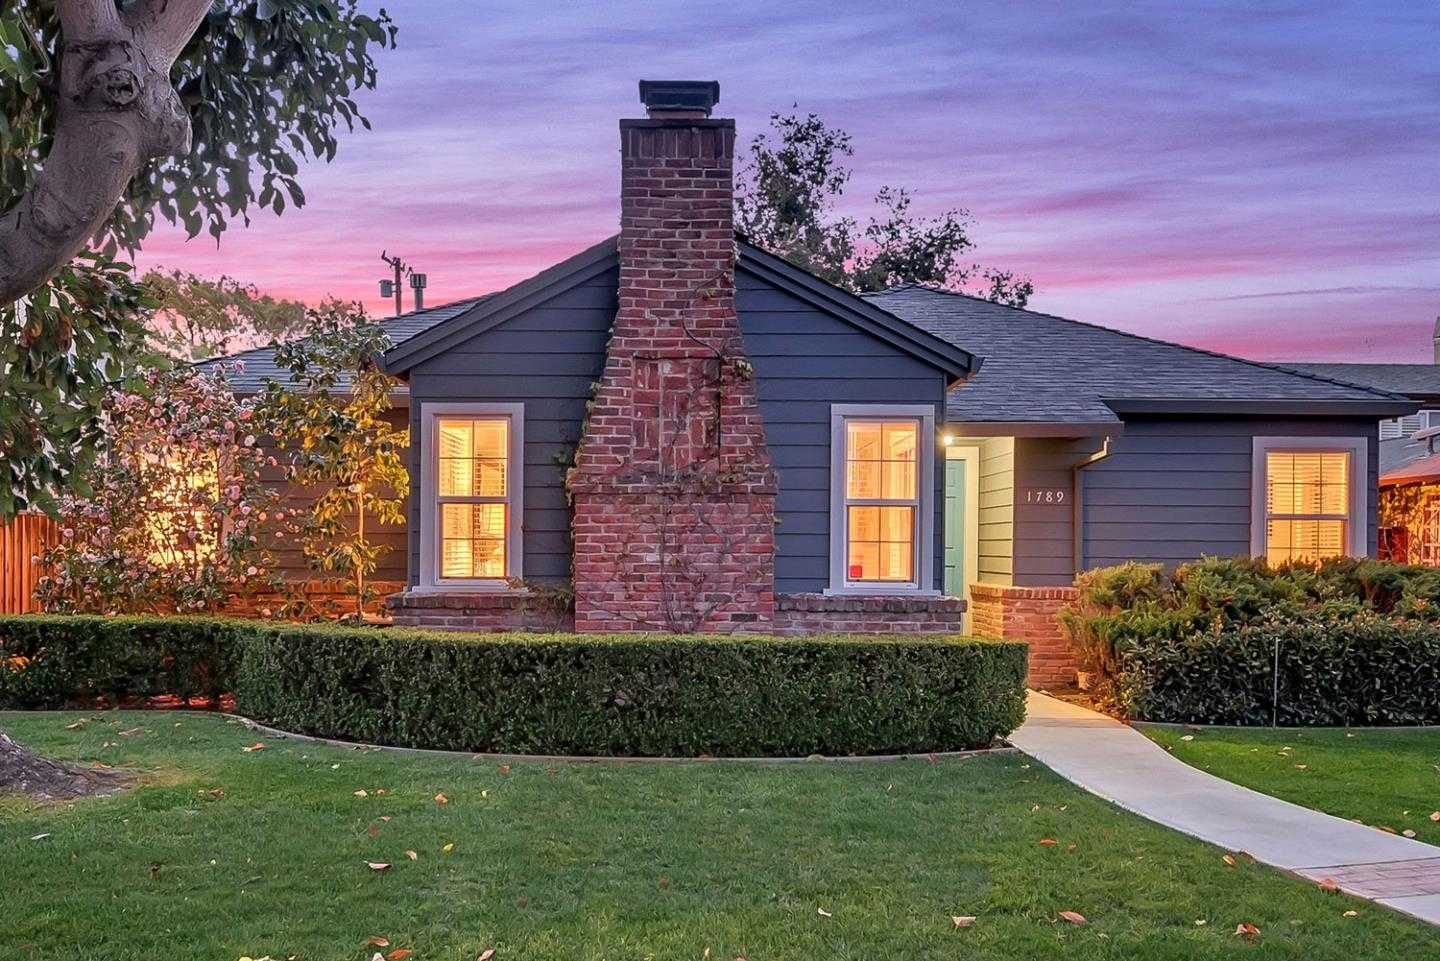 $1,800,000 - 3Br/2Ba -  for Sale in San Jose